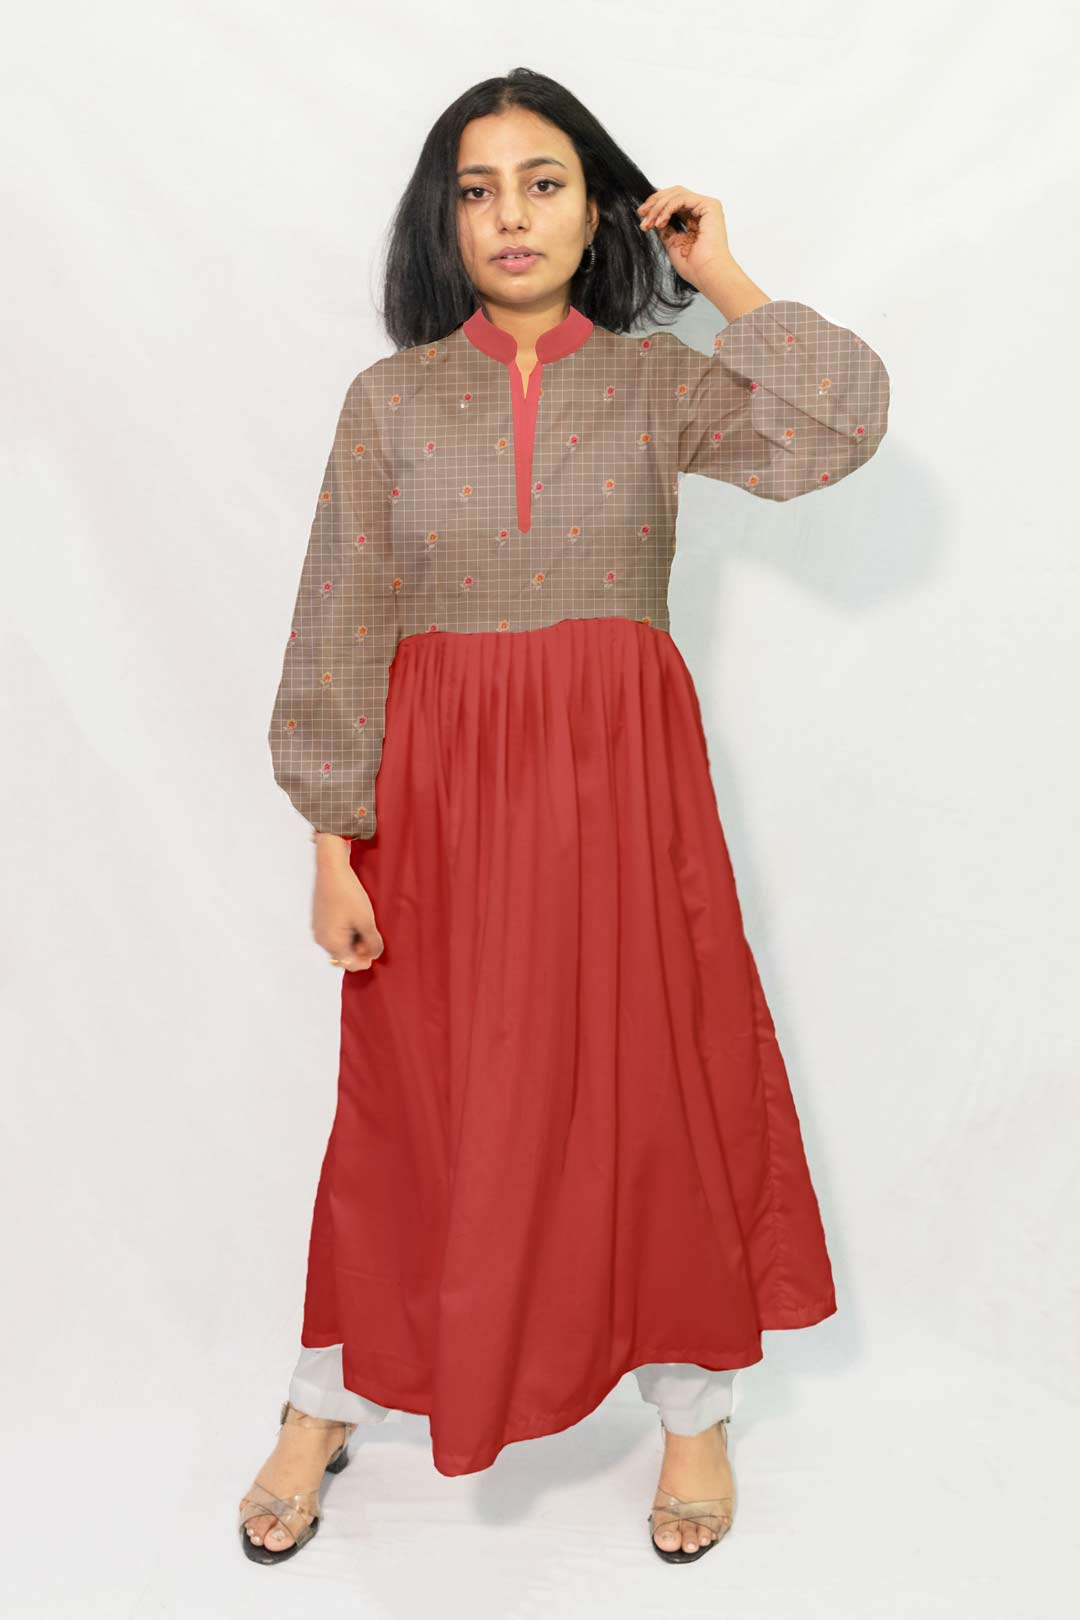 Cotton Embroidery Frock Style Kurta – Pie in the sky